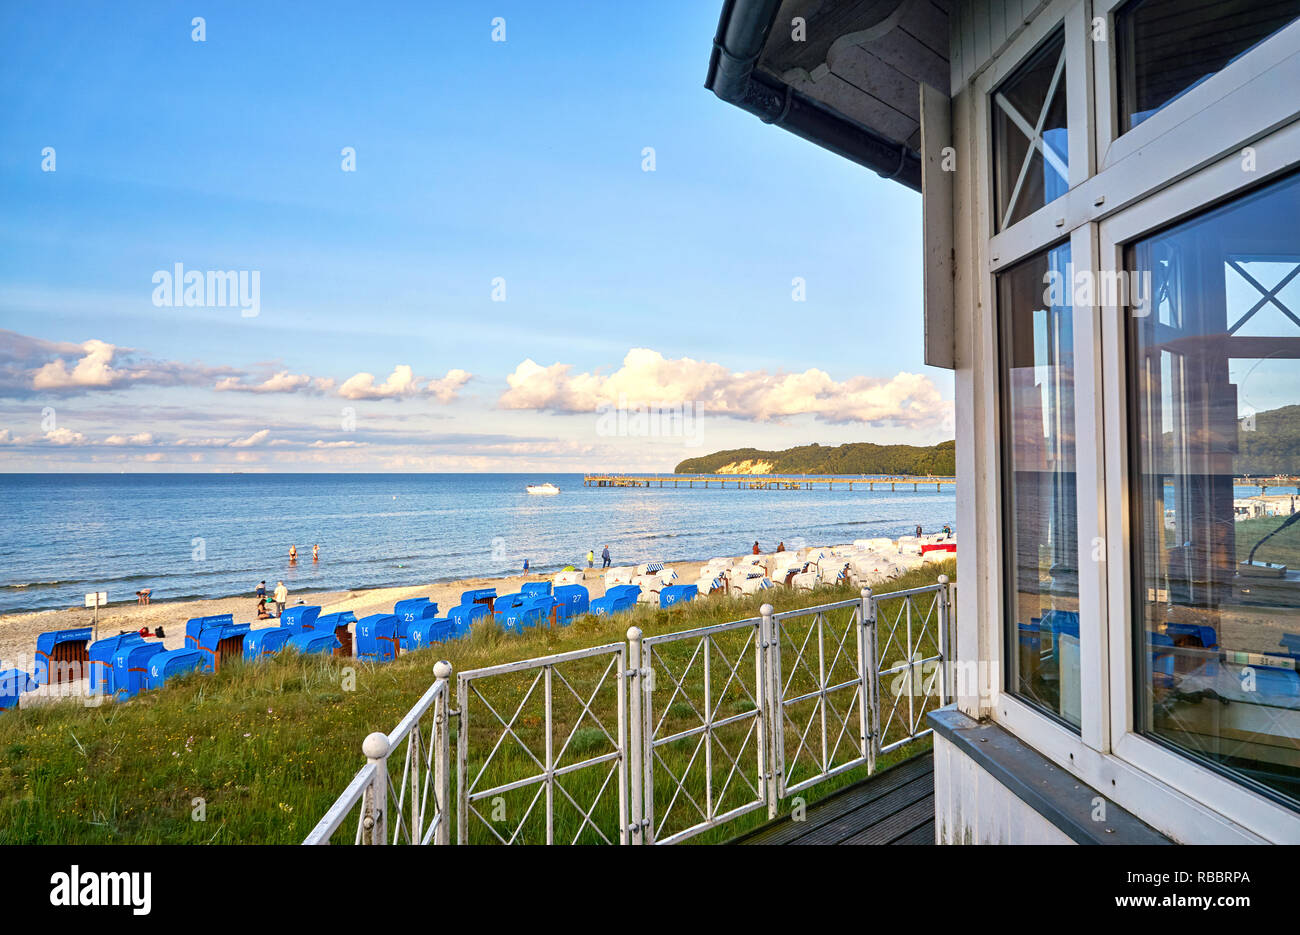 View from lifeguard tower onto the beach with beach chairs. Binz on the island of Rügen. - Stock Image